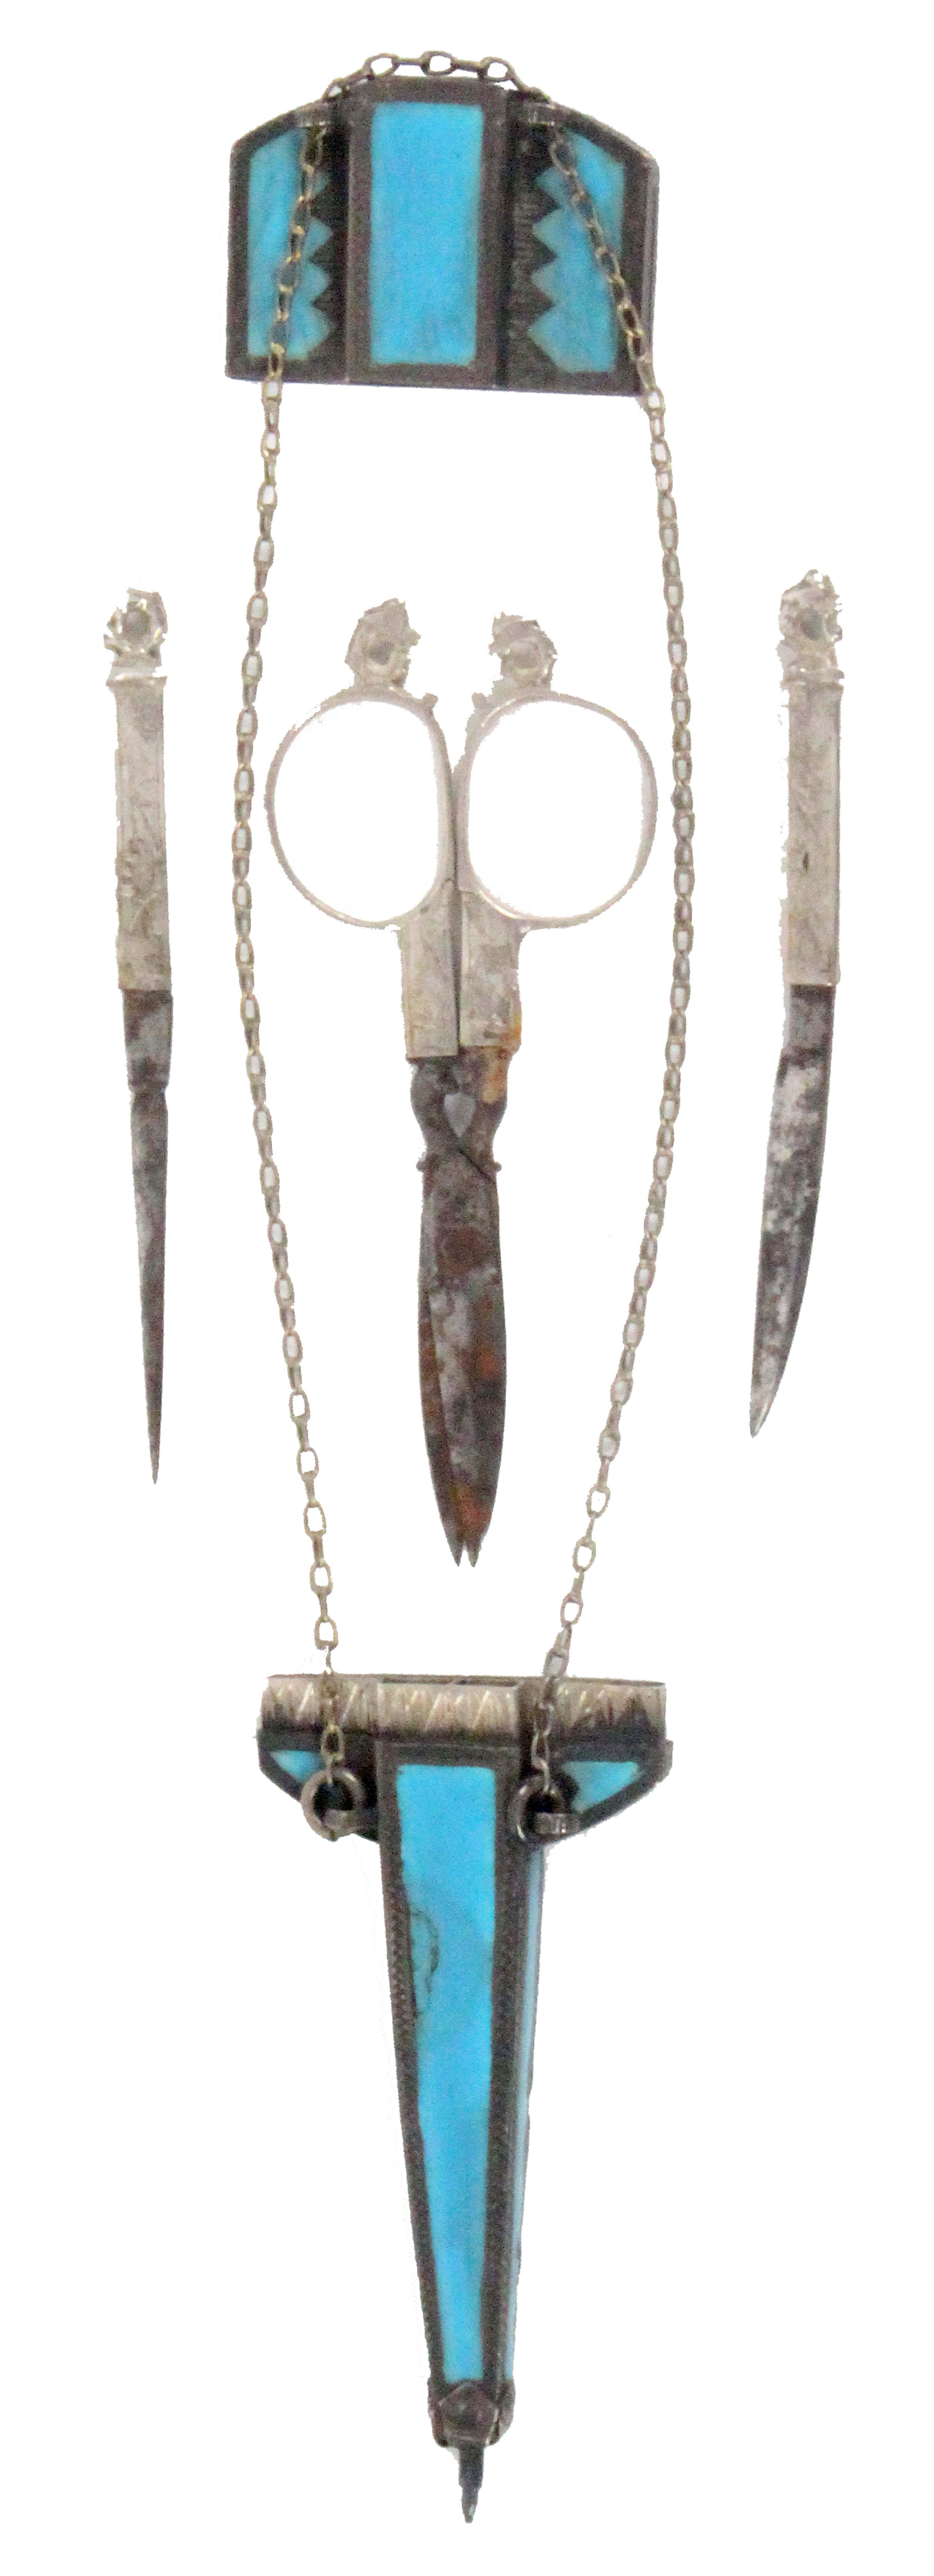 A very rare 18th Century three piece parfilage or drizzling set in two piece chain connected - Image 2 of 2